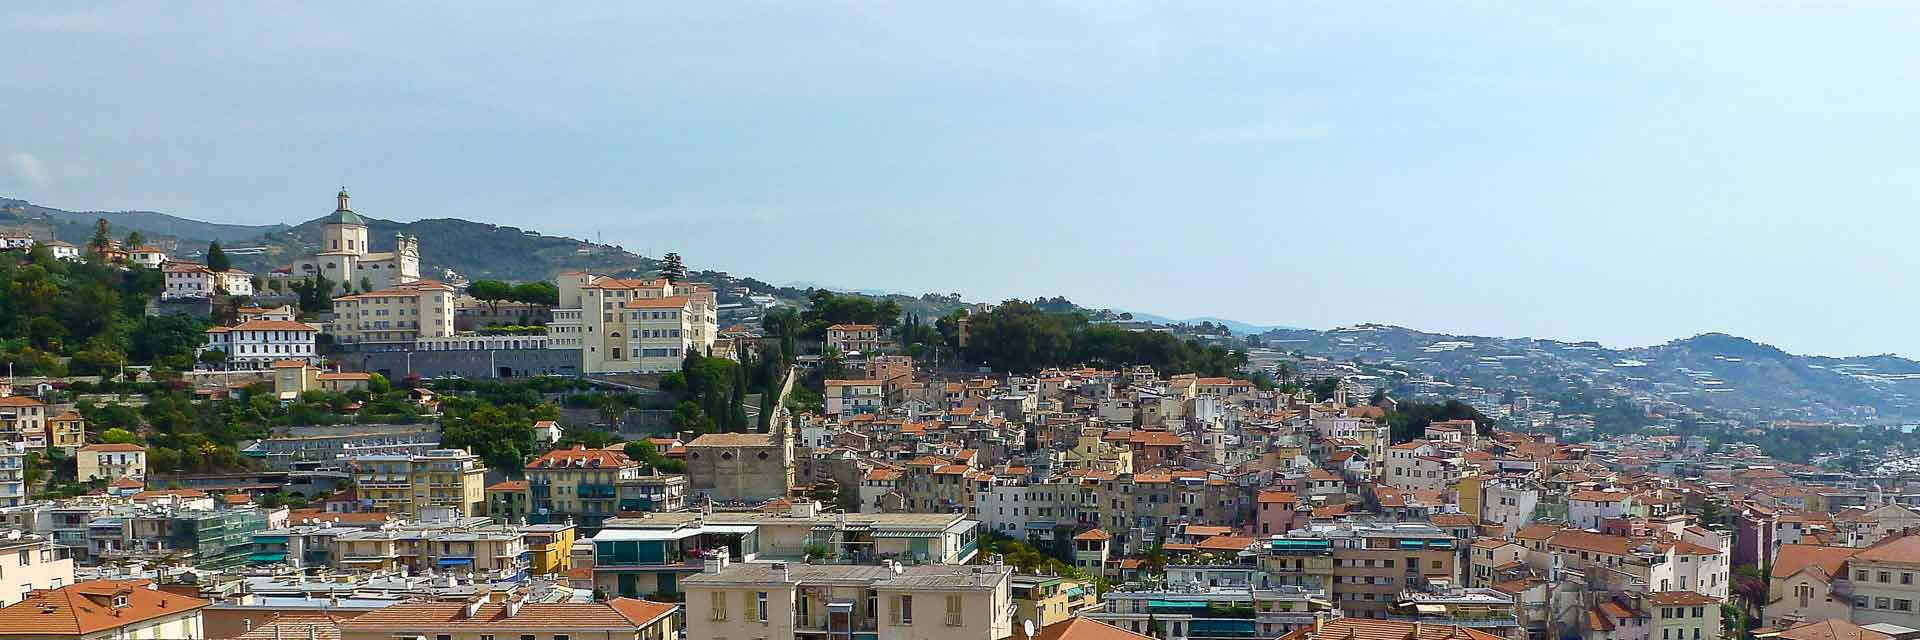 Sanremo - Pigna area (West side)